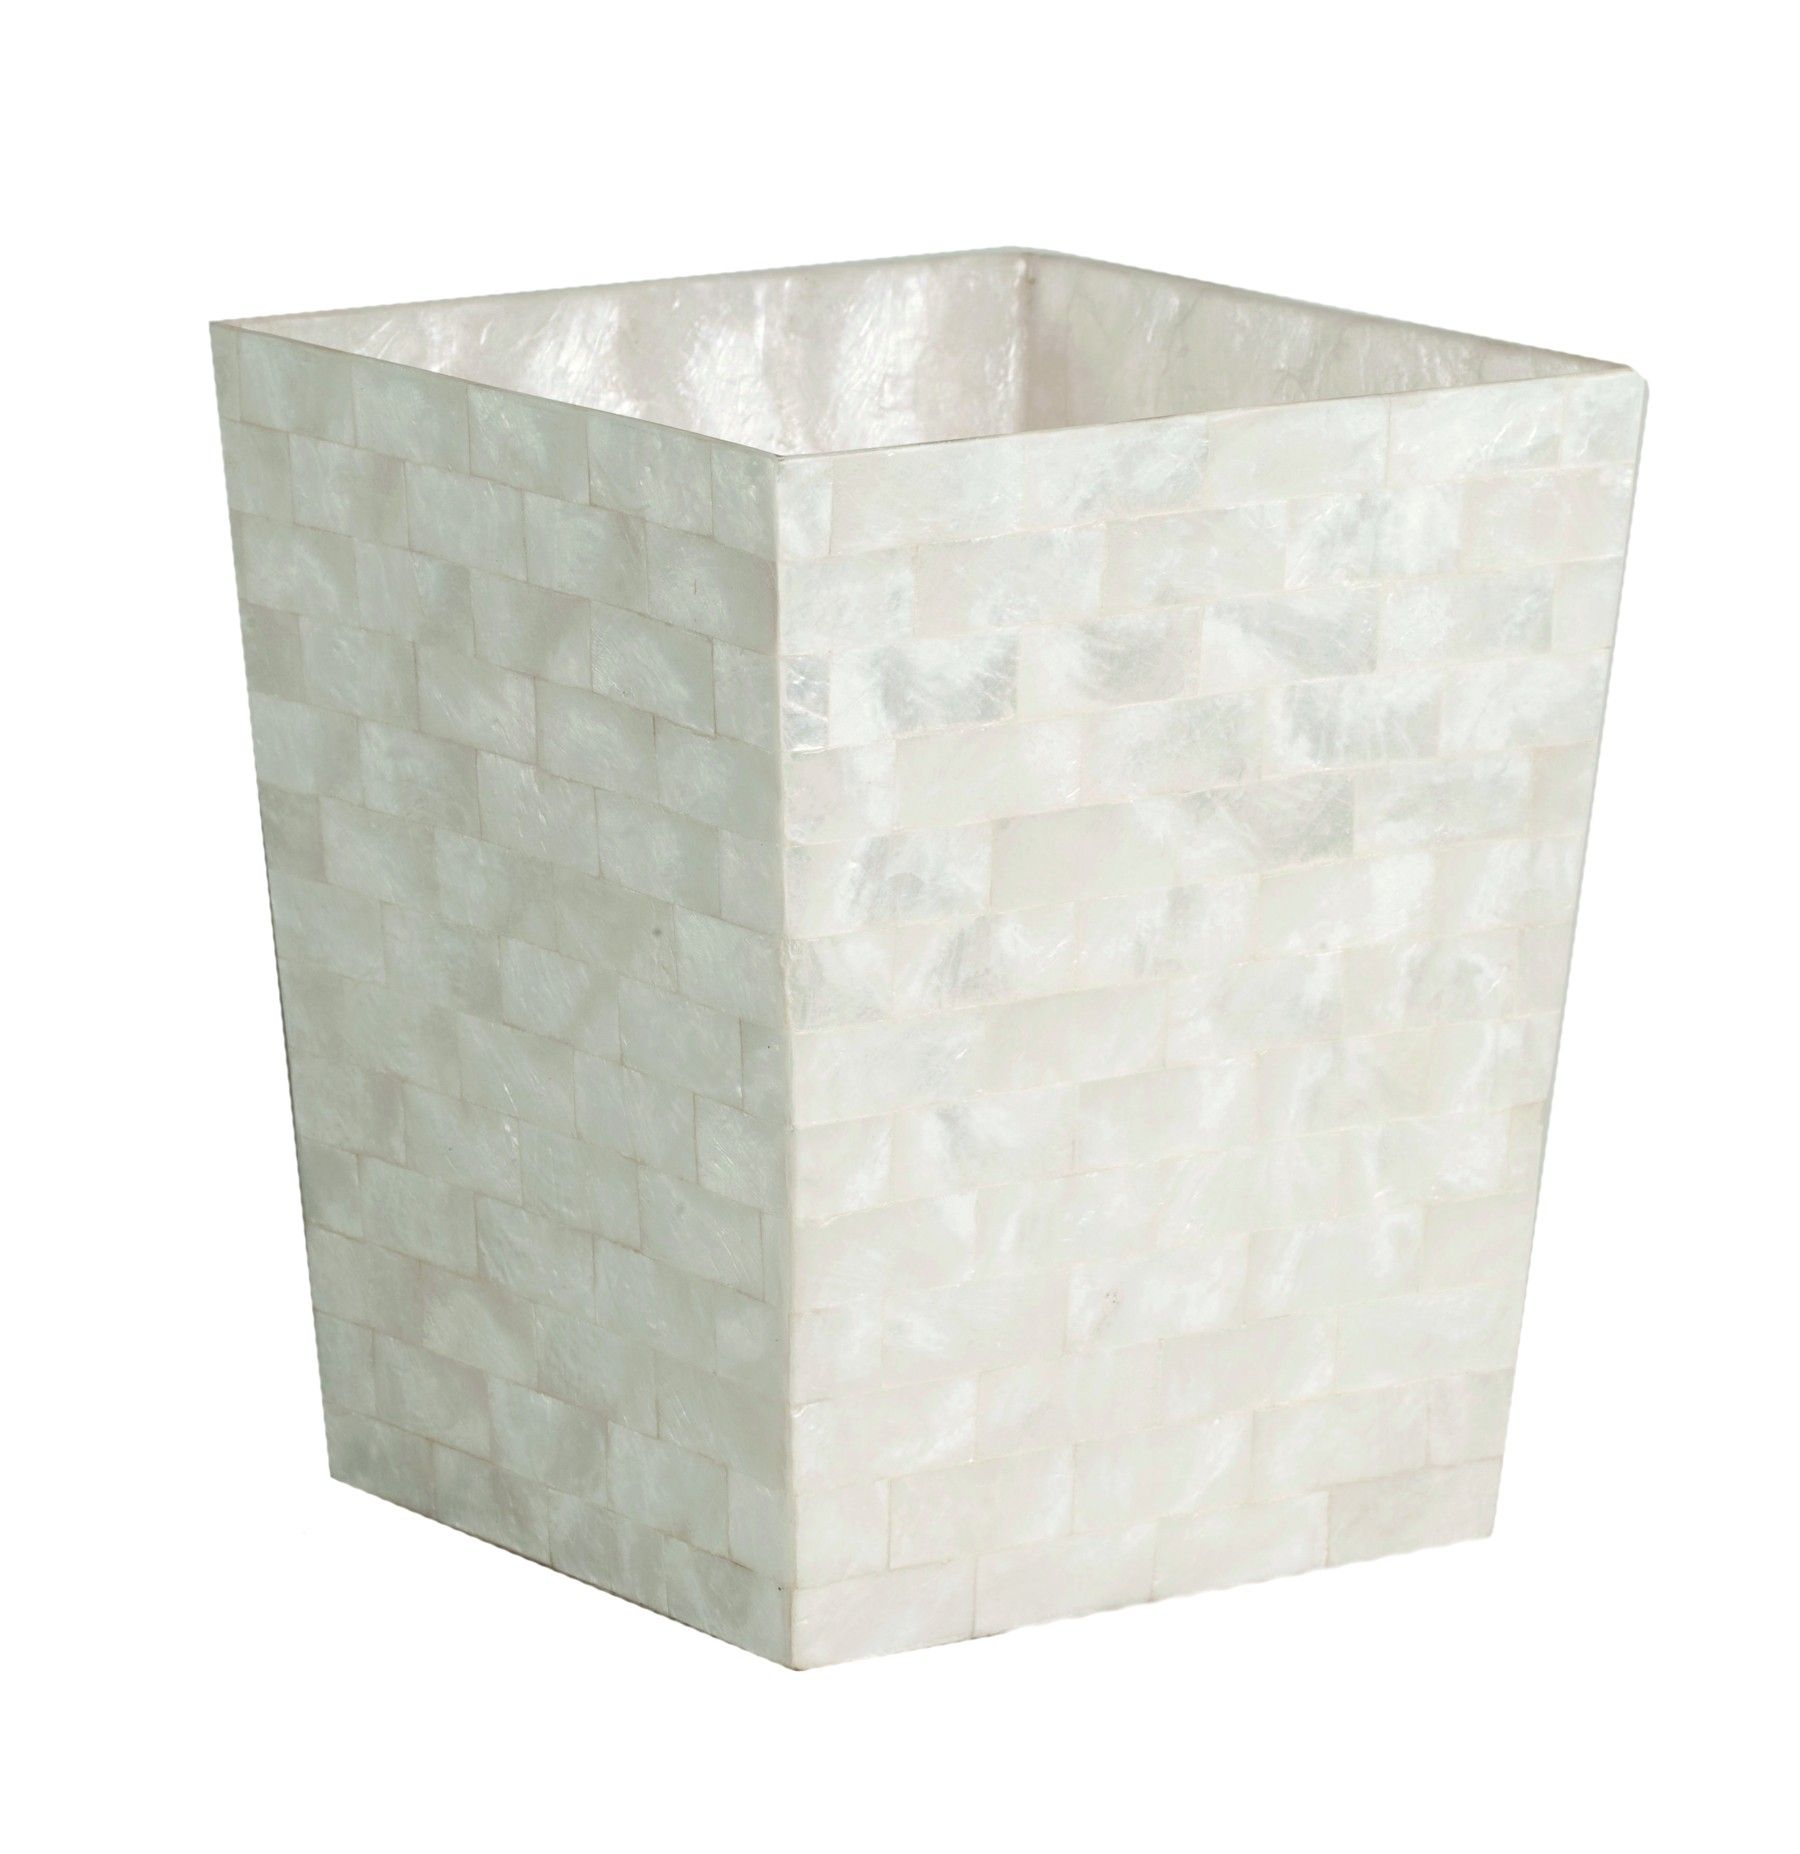 Image Result For Mother Of Pearl Bathroom Wastebasket Can